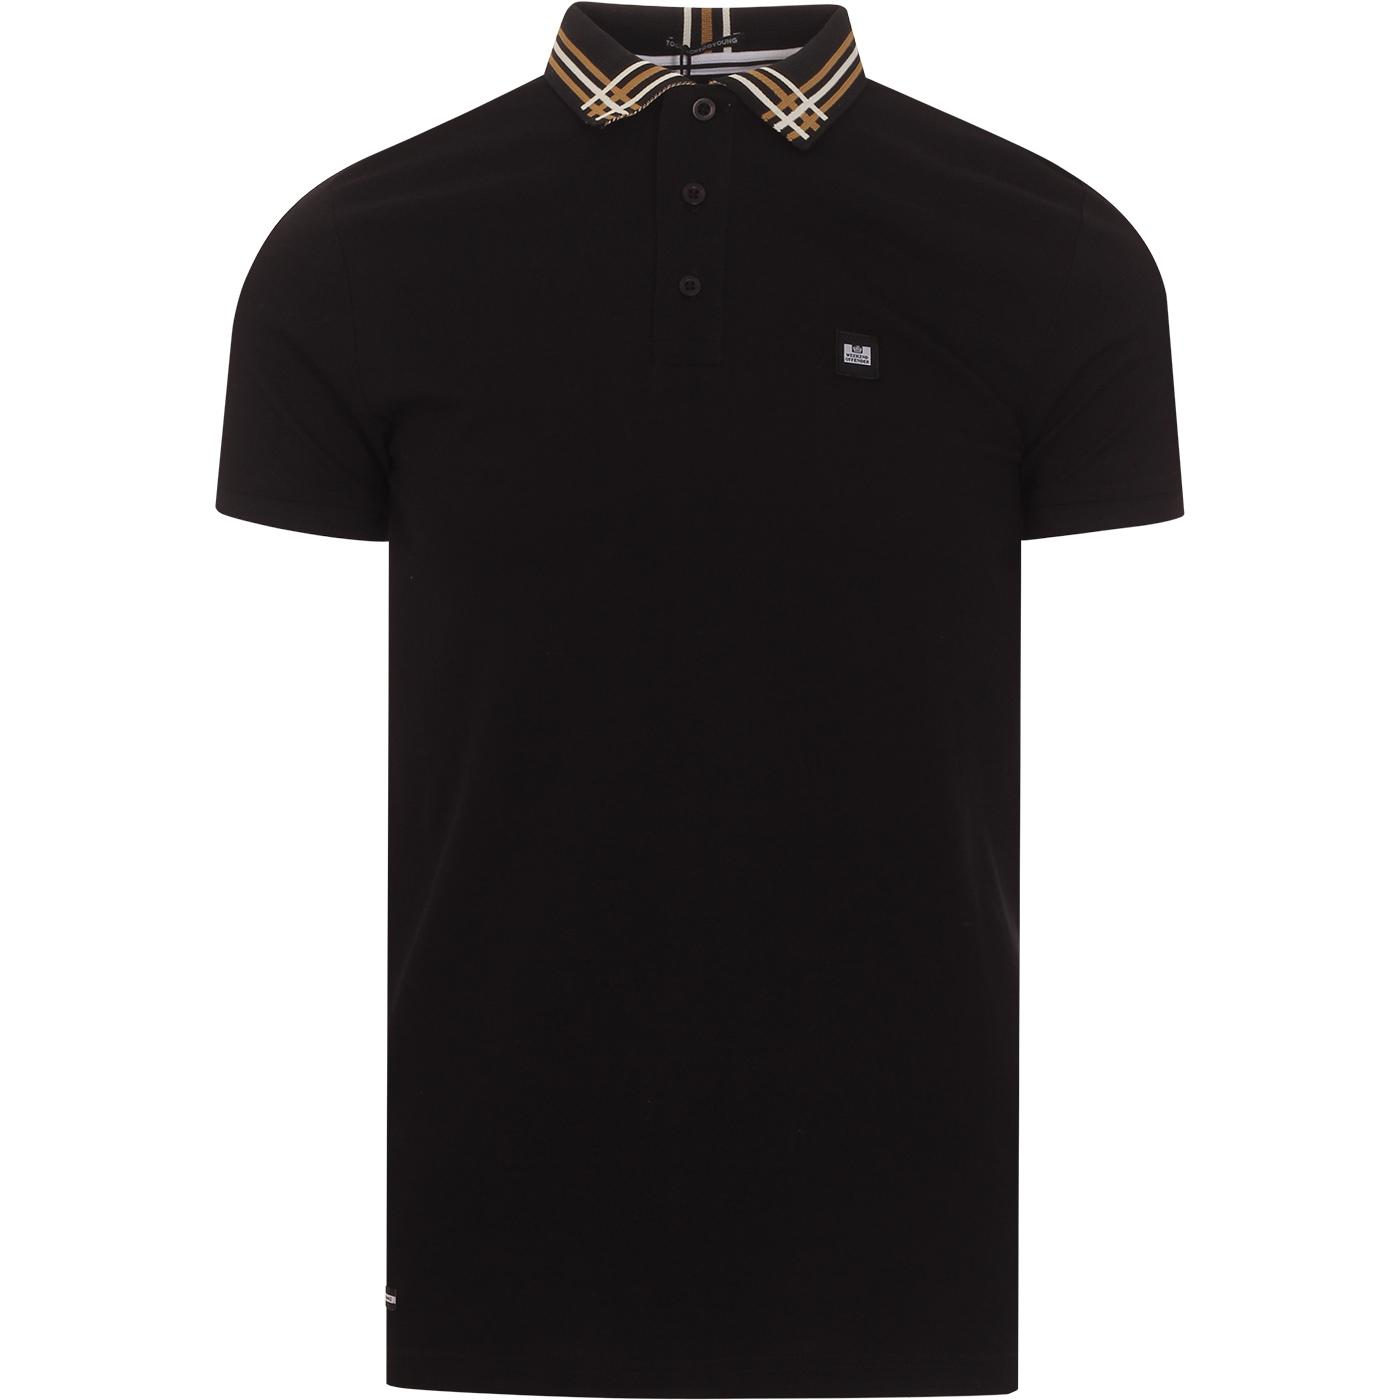 Rivera WEEKEND OFFENDER Cross Hatch Collar Polo B